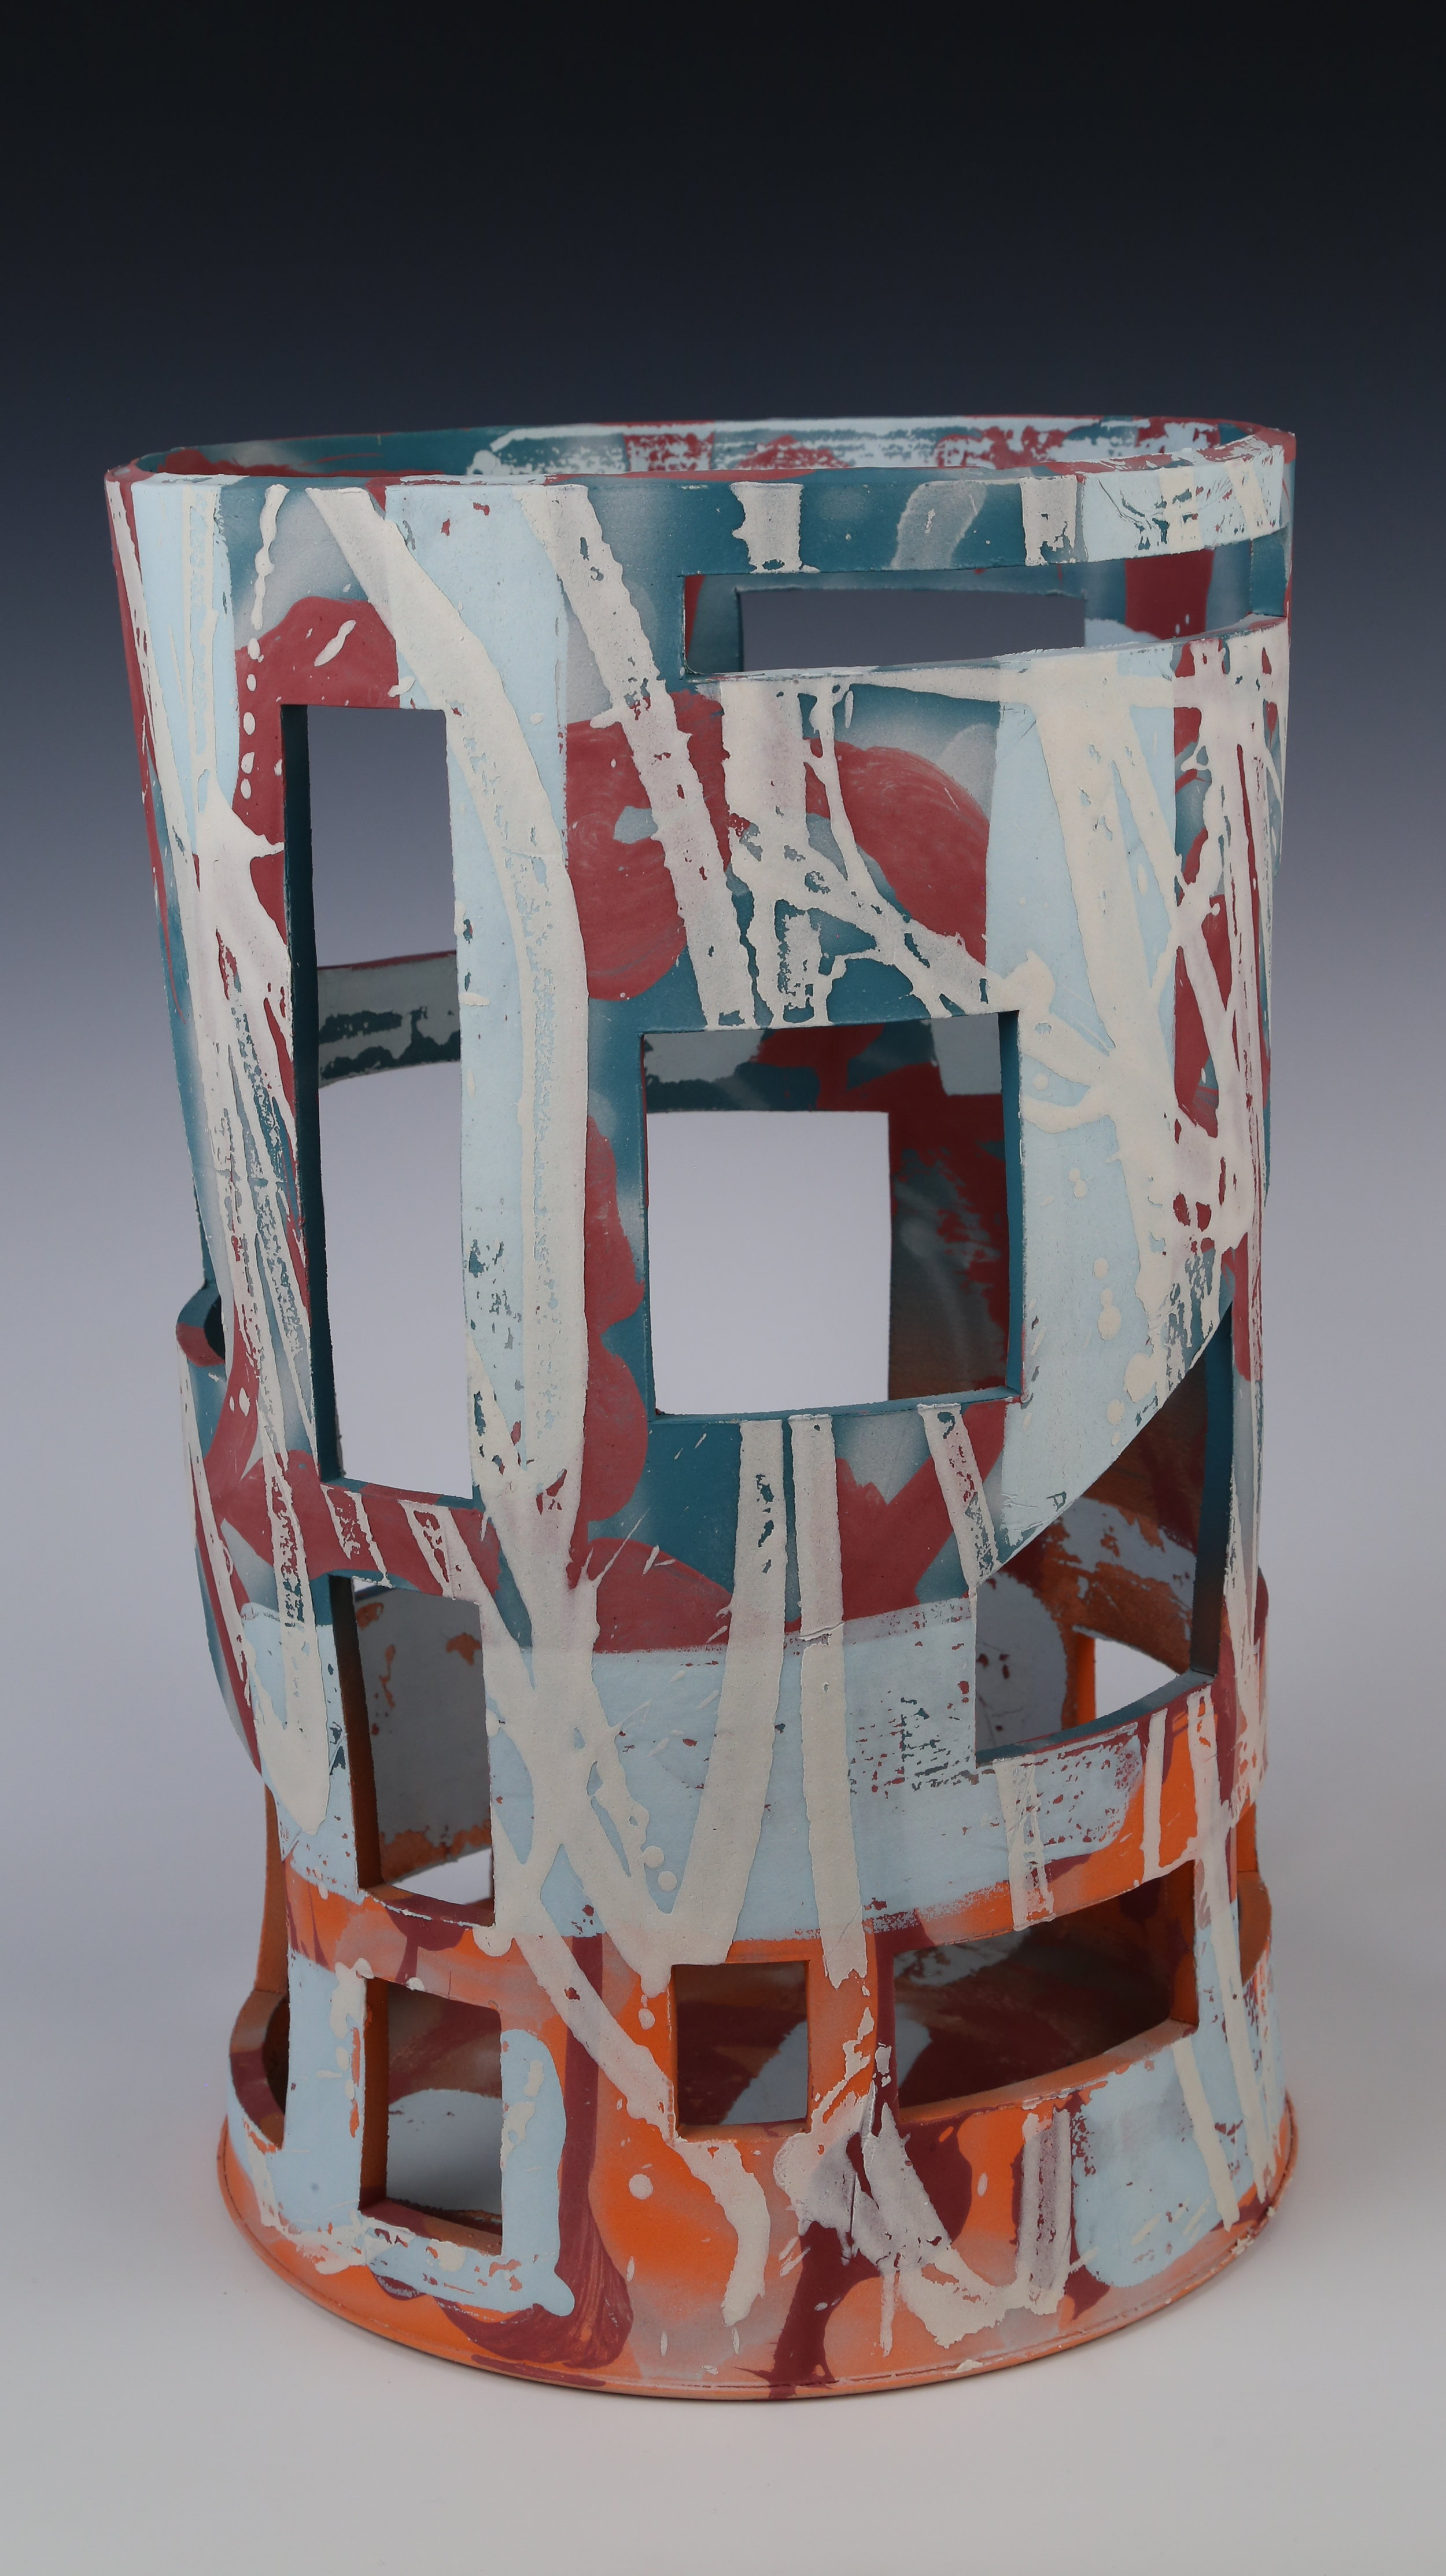 Stack s/n 2015_7_24